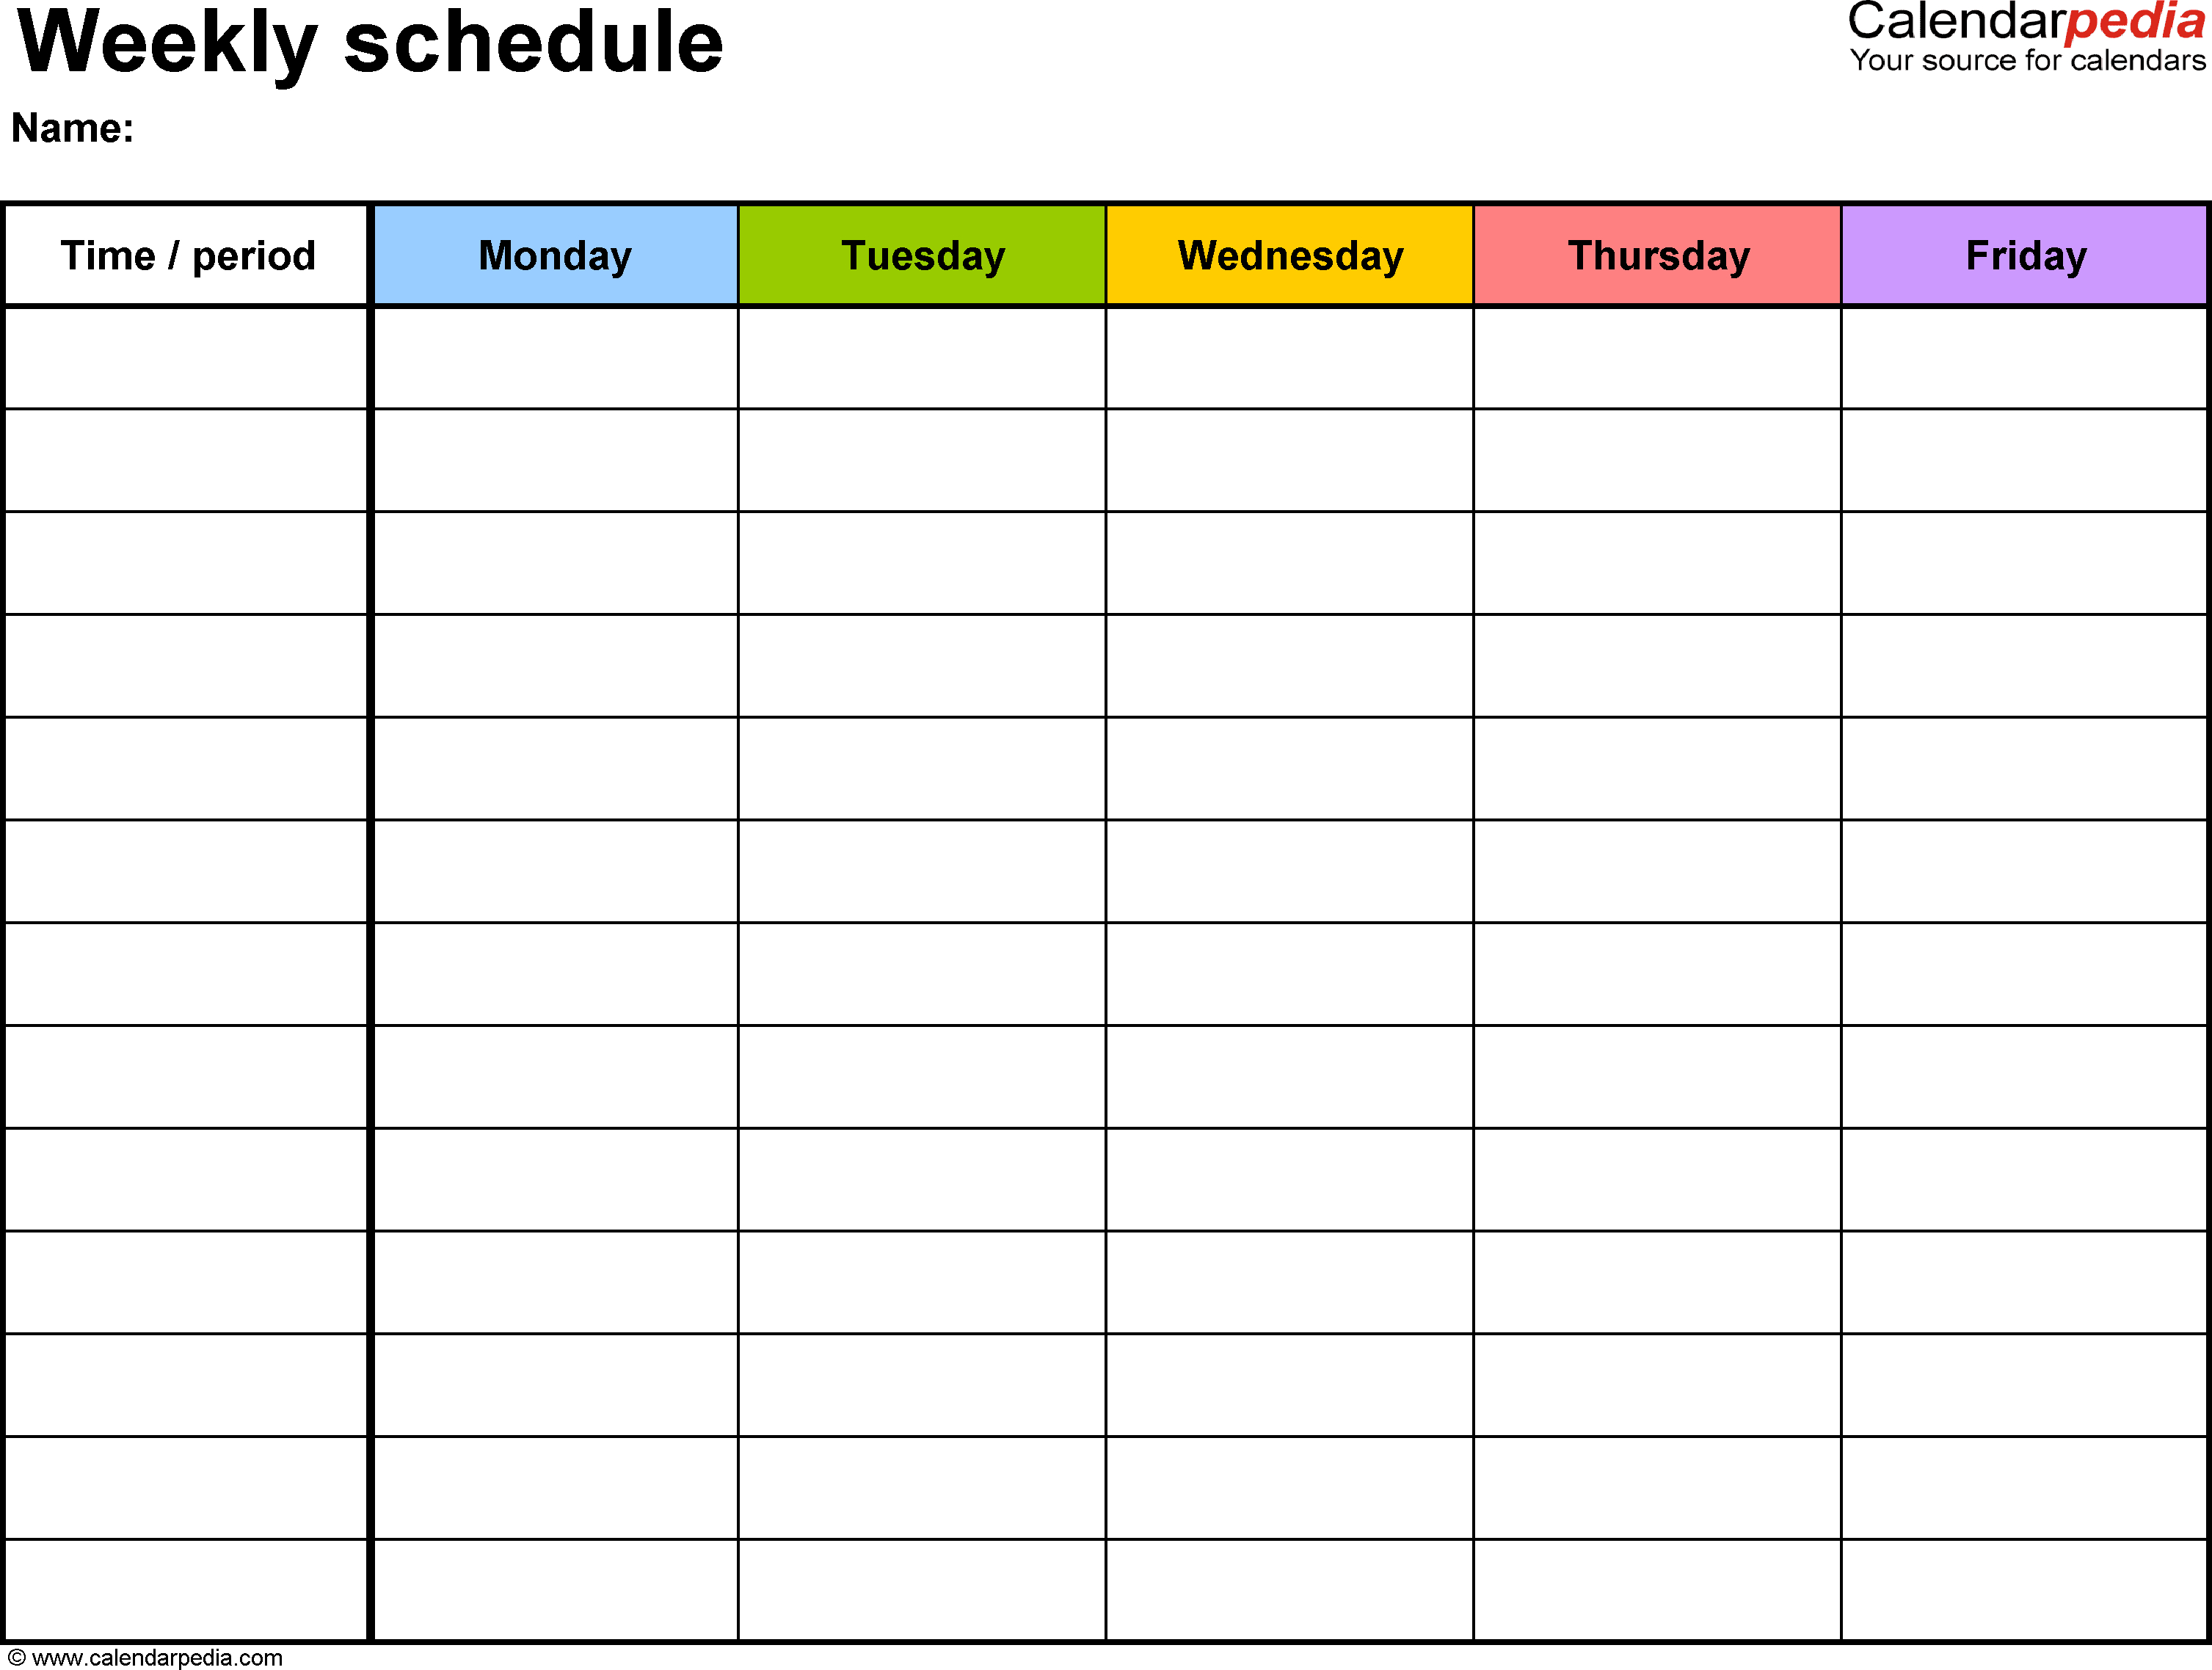 Free Weekly Schedule Templates For Word - 18 Templates with 7 Day Weekly Planner Template Printable